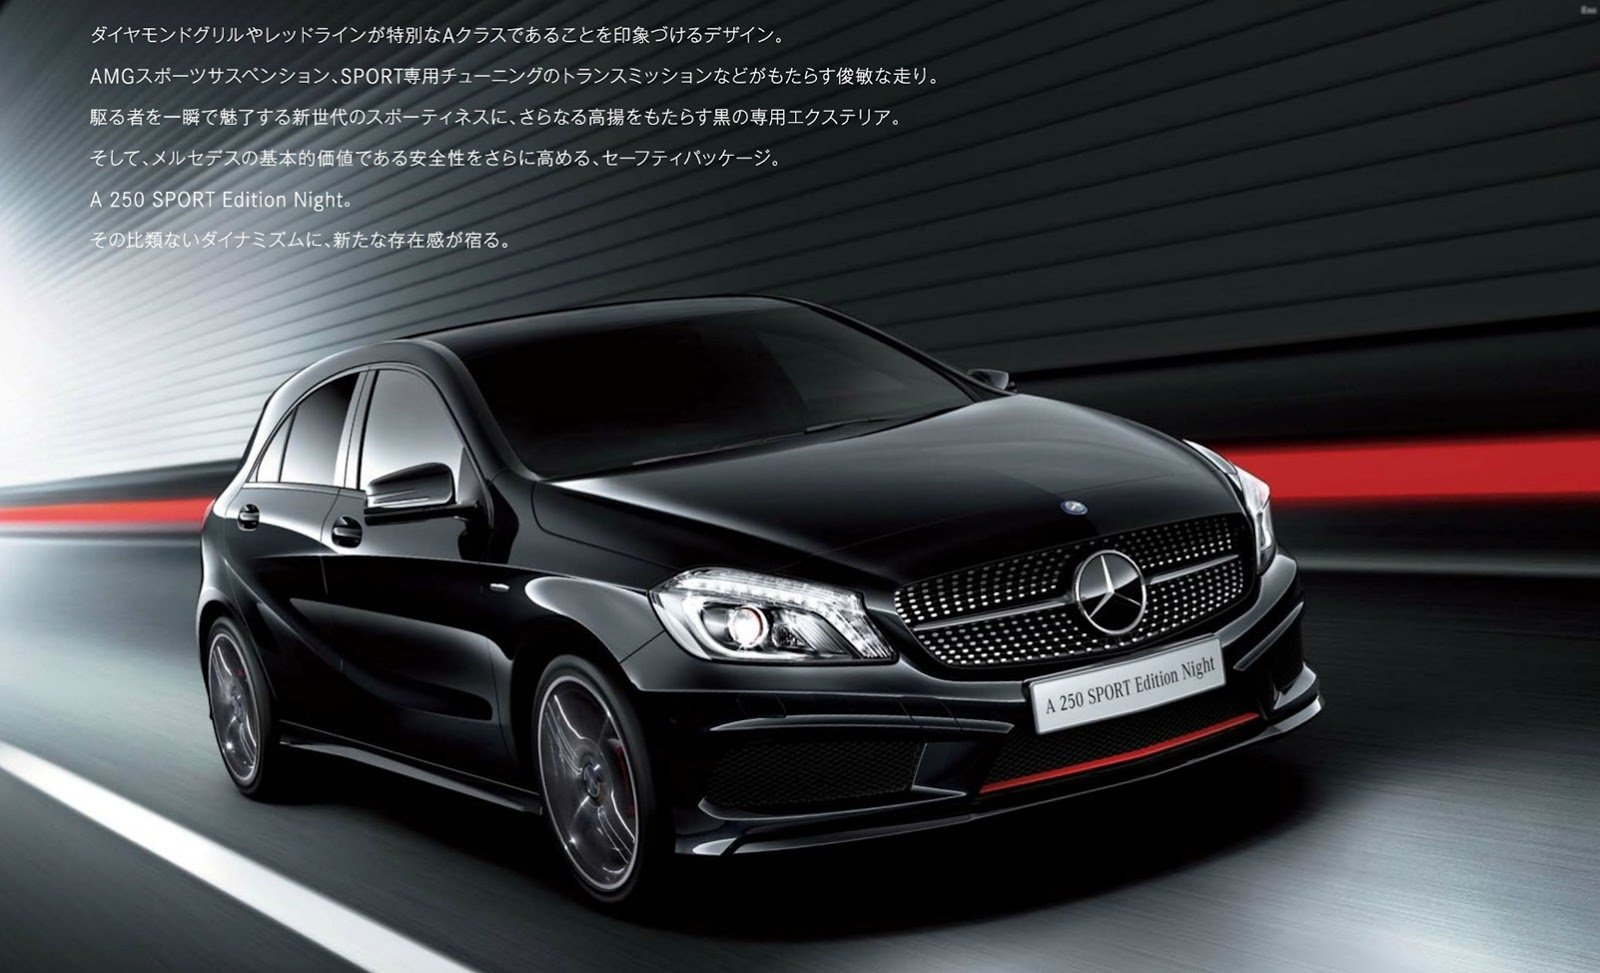 2014 mercedes benz a 250 sport edition night picture 541344 car review top speed. Black Bedroom Furniture Sets. Home Design Ideas